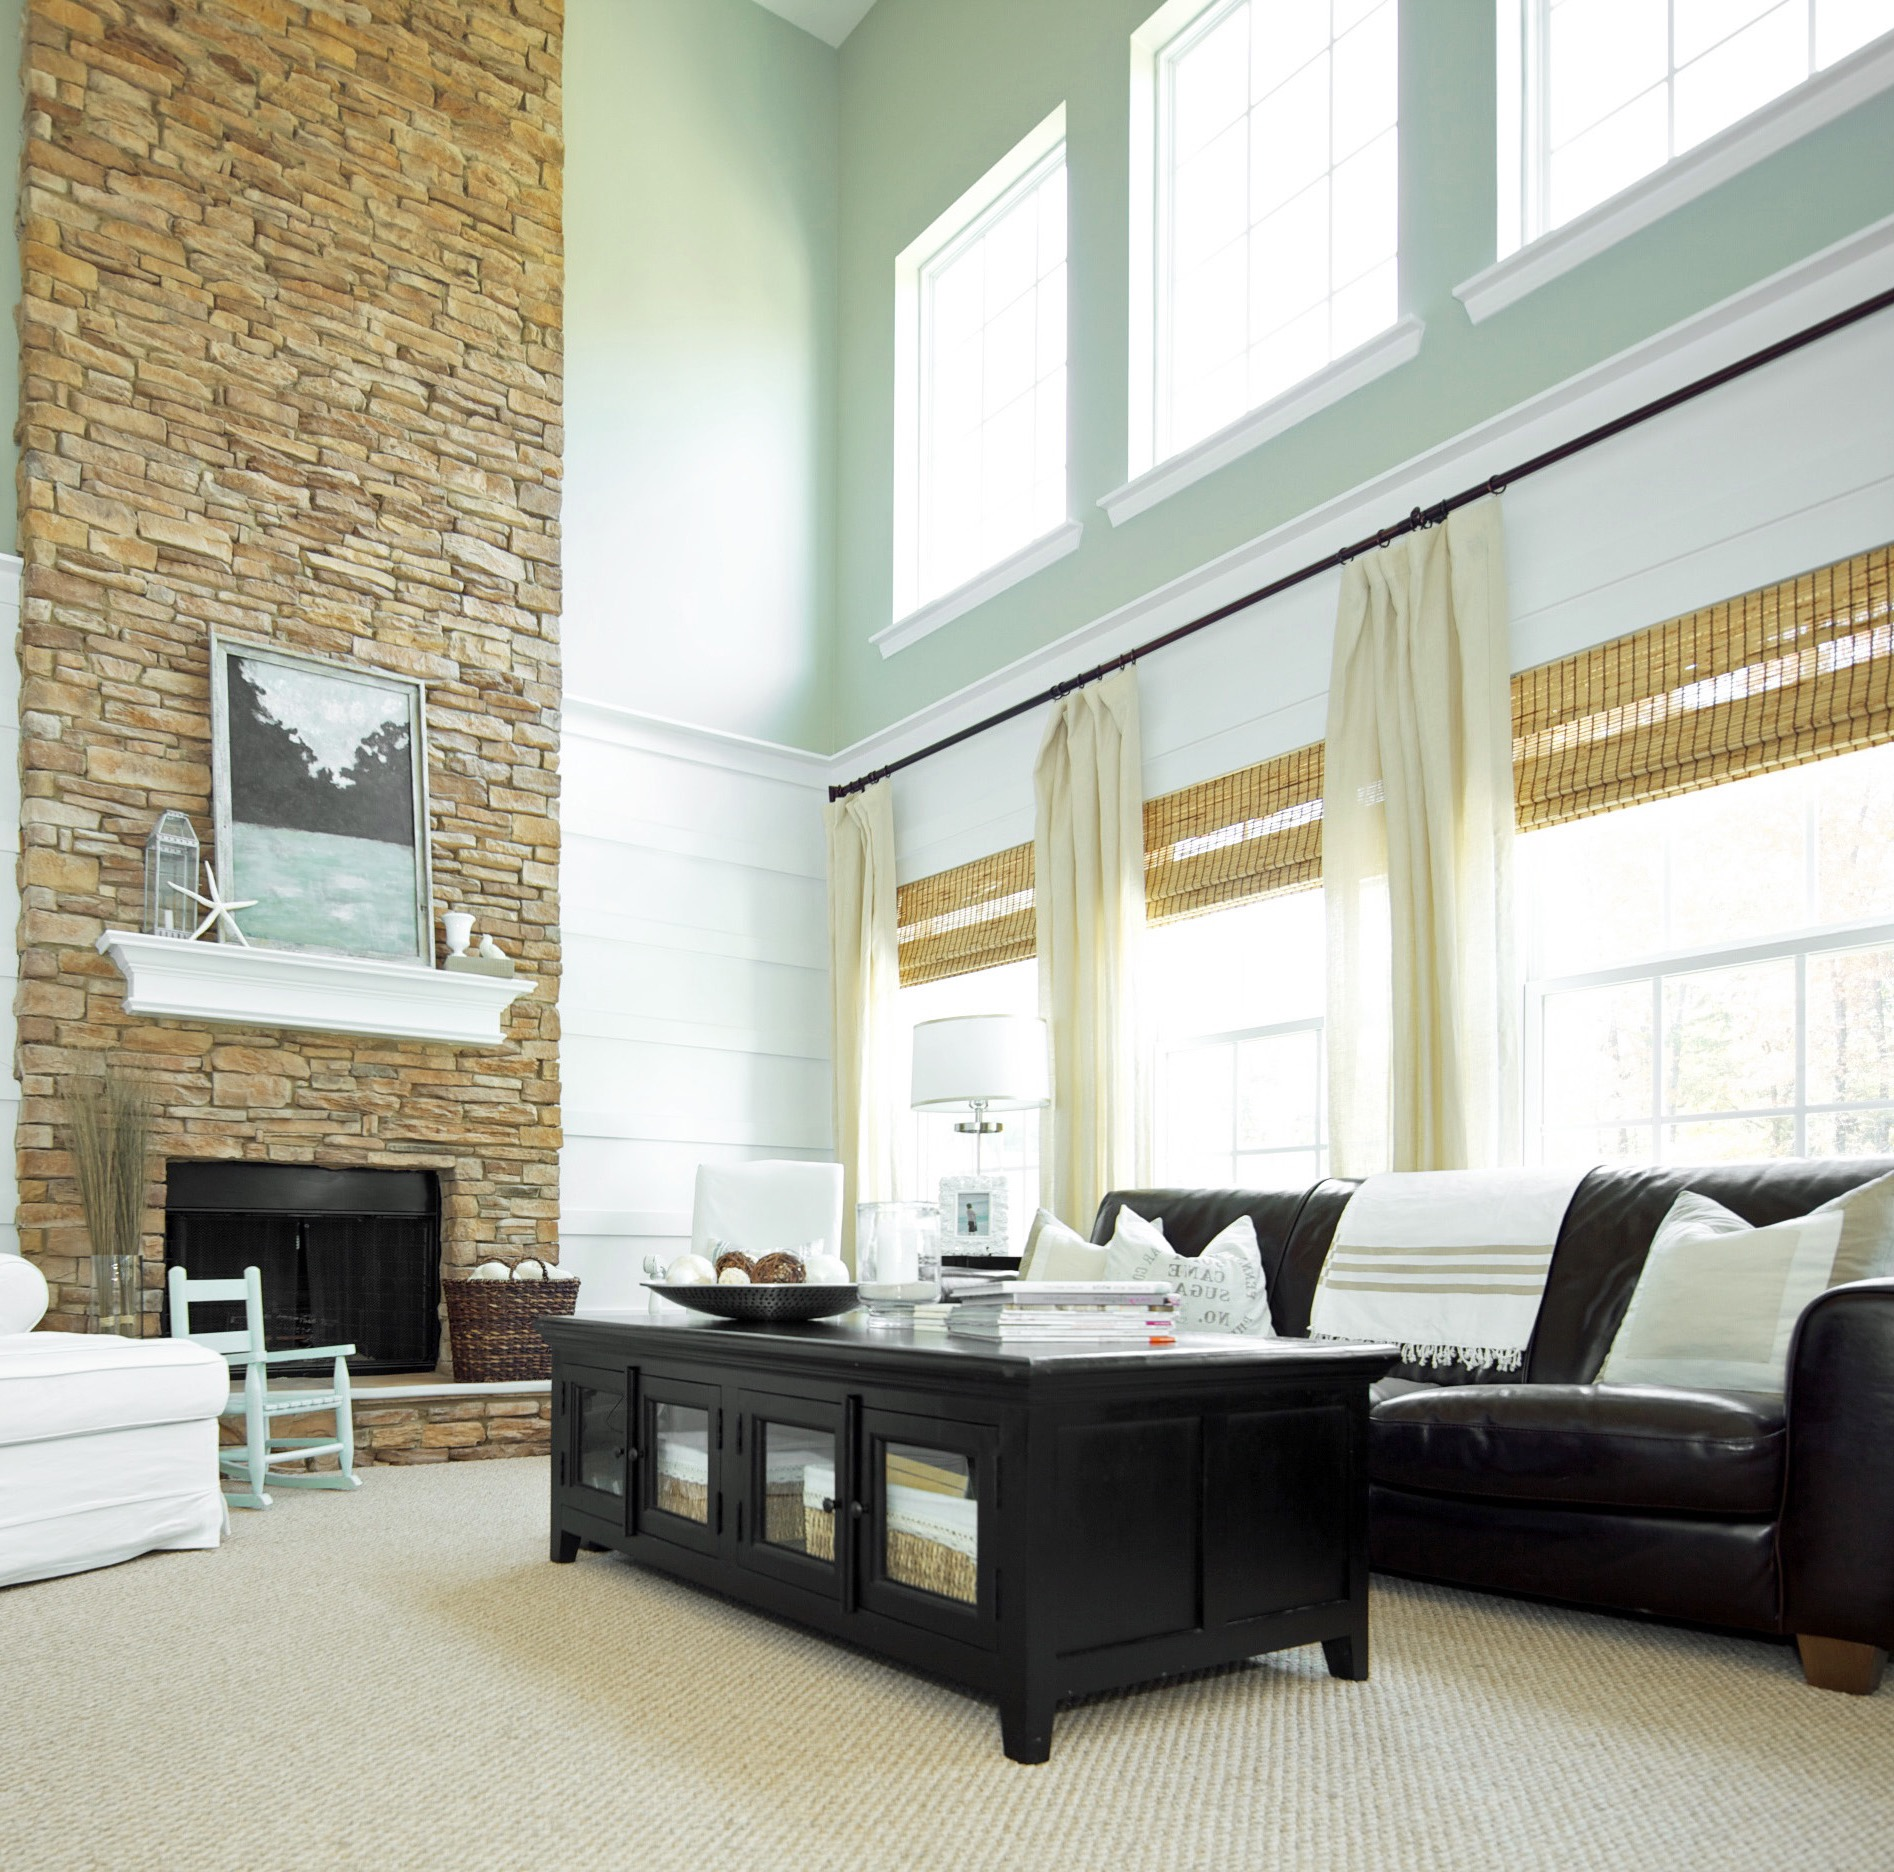 Dramatic Floor To Ceiling Brick Wall Decor For Modern Living Room (Image 6 of 30)